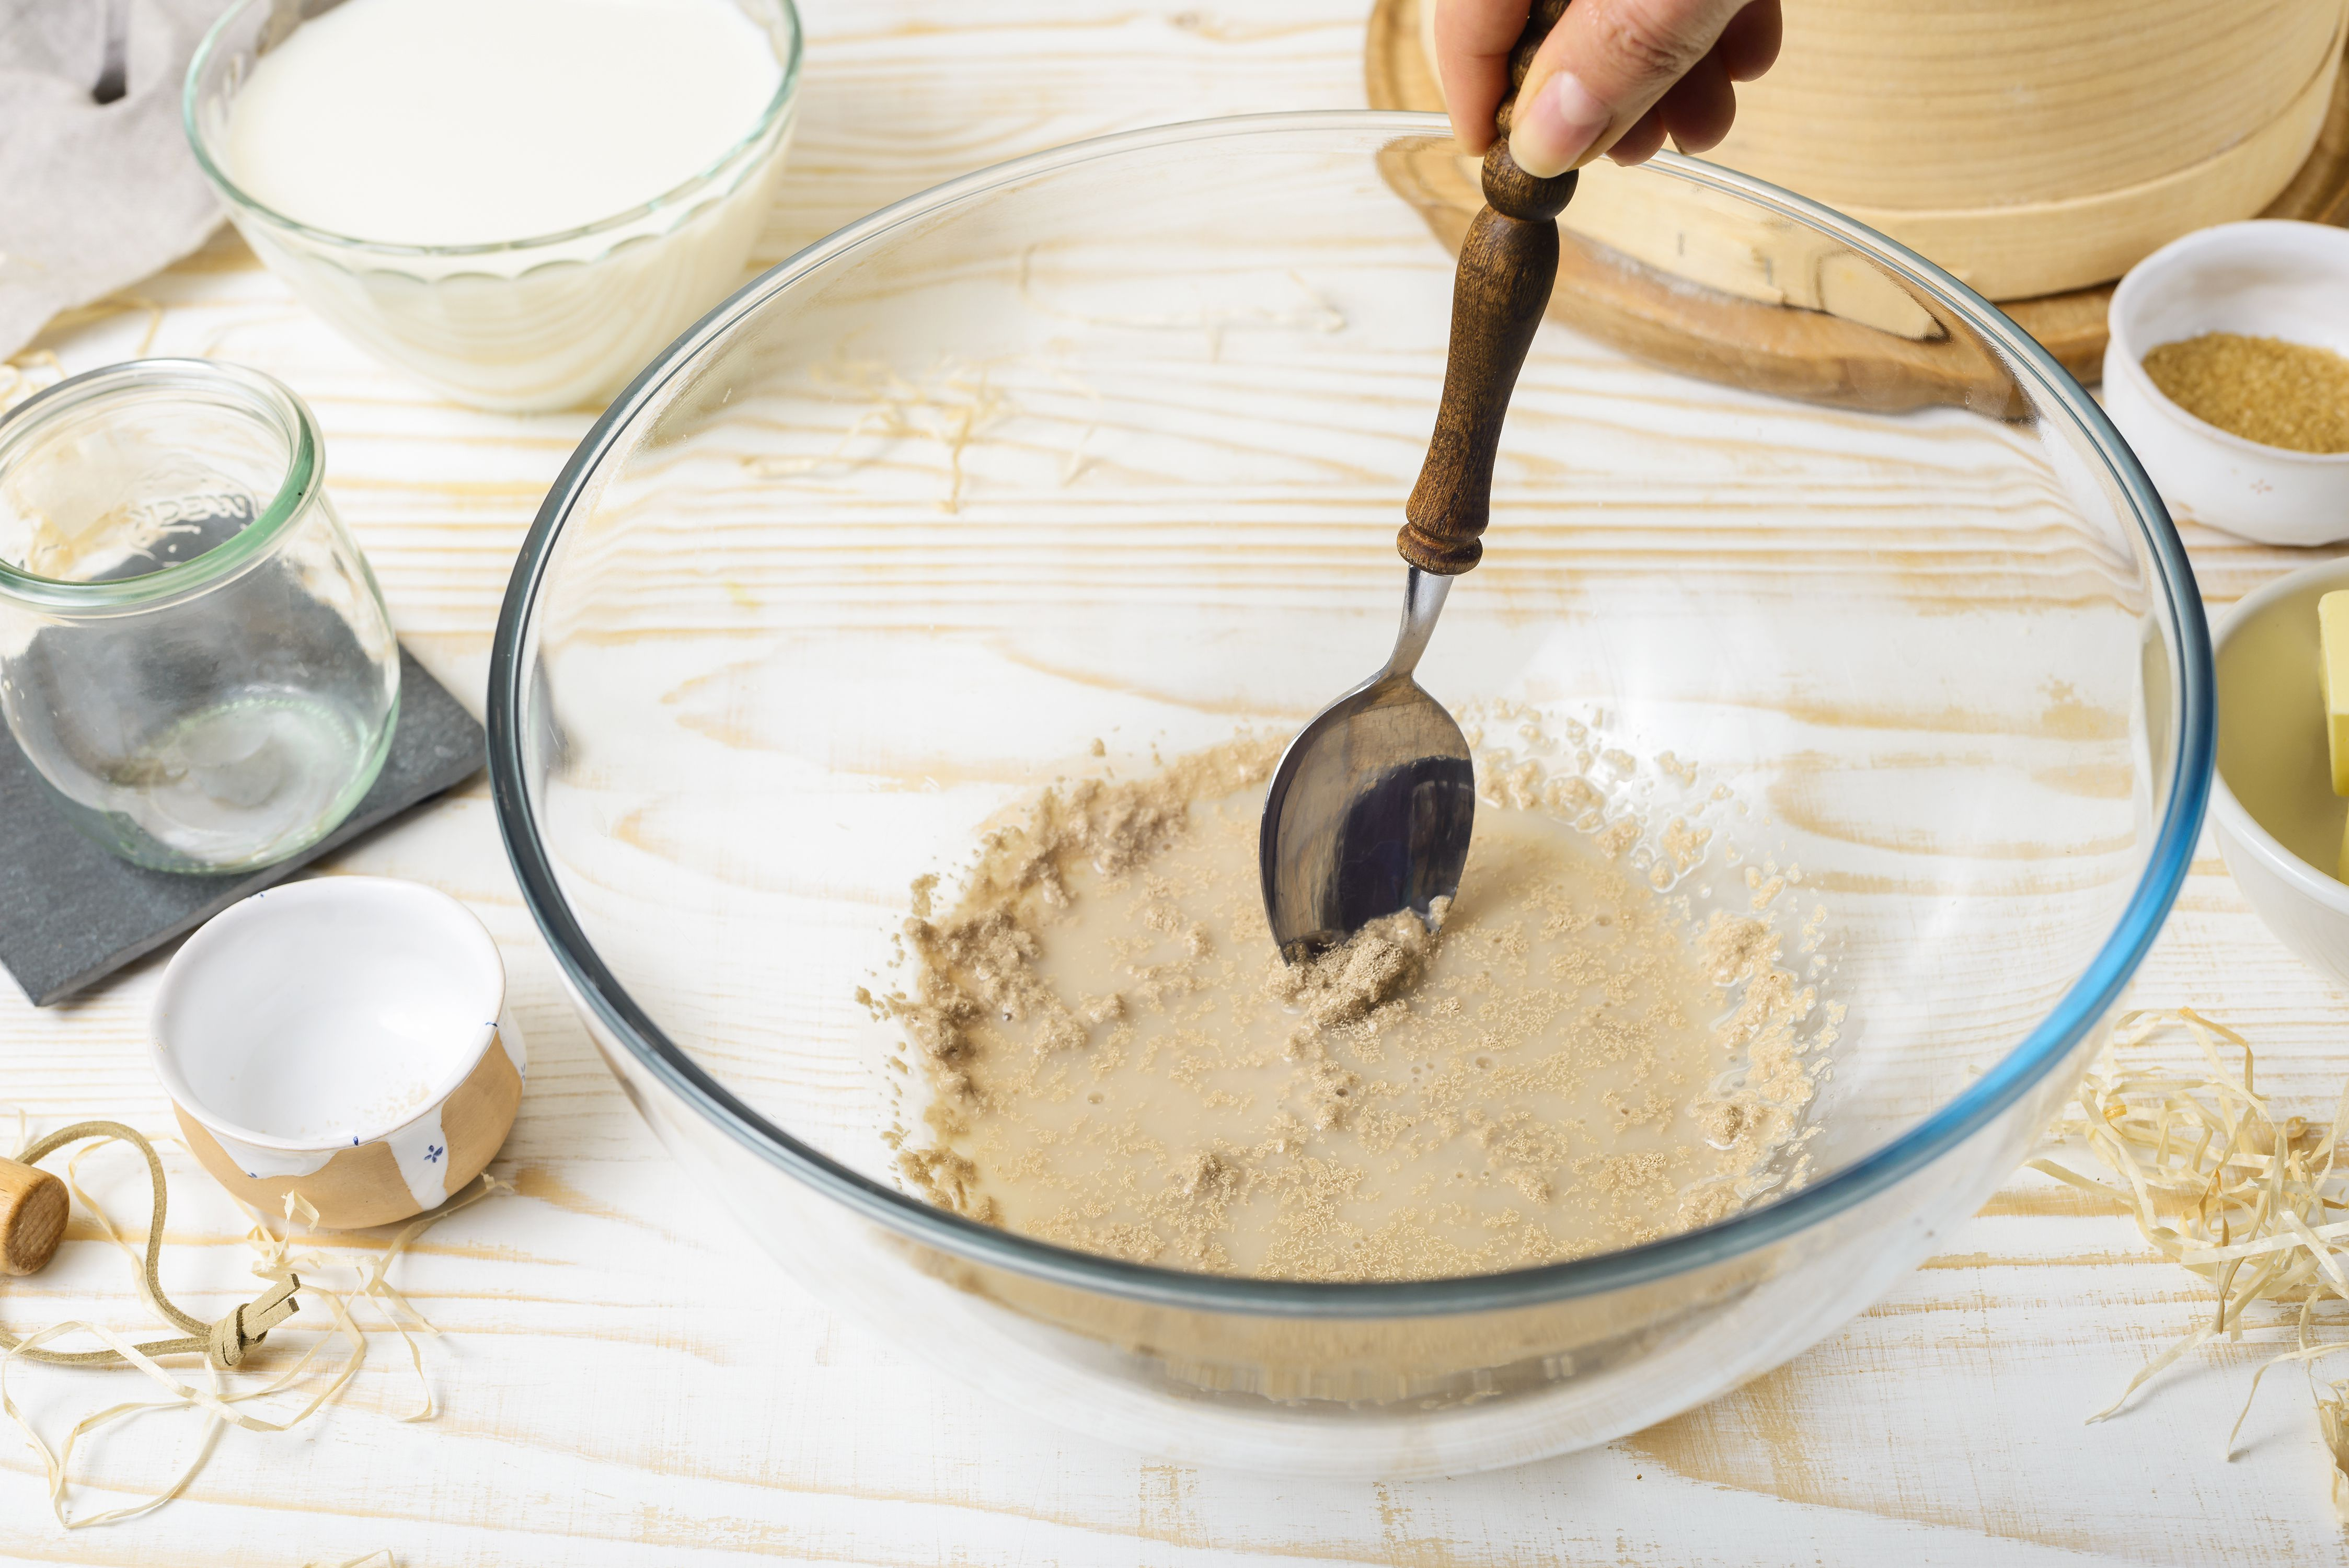 Yeast in bowl